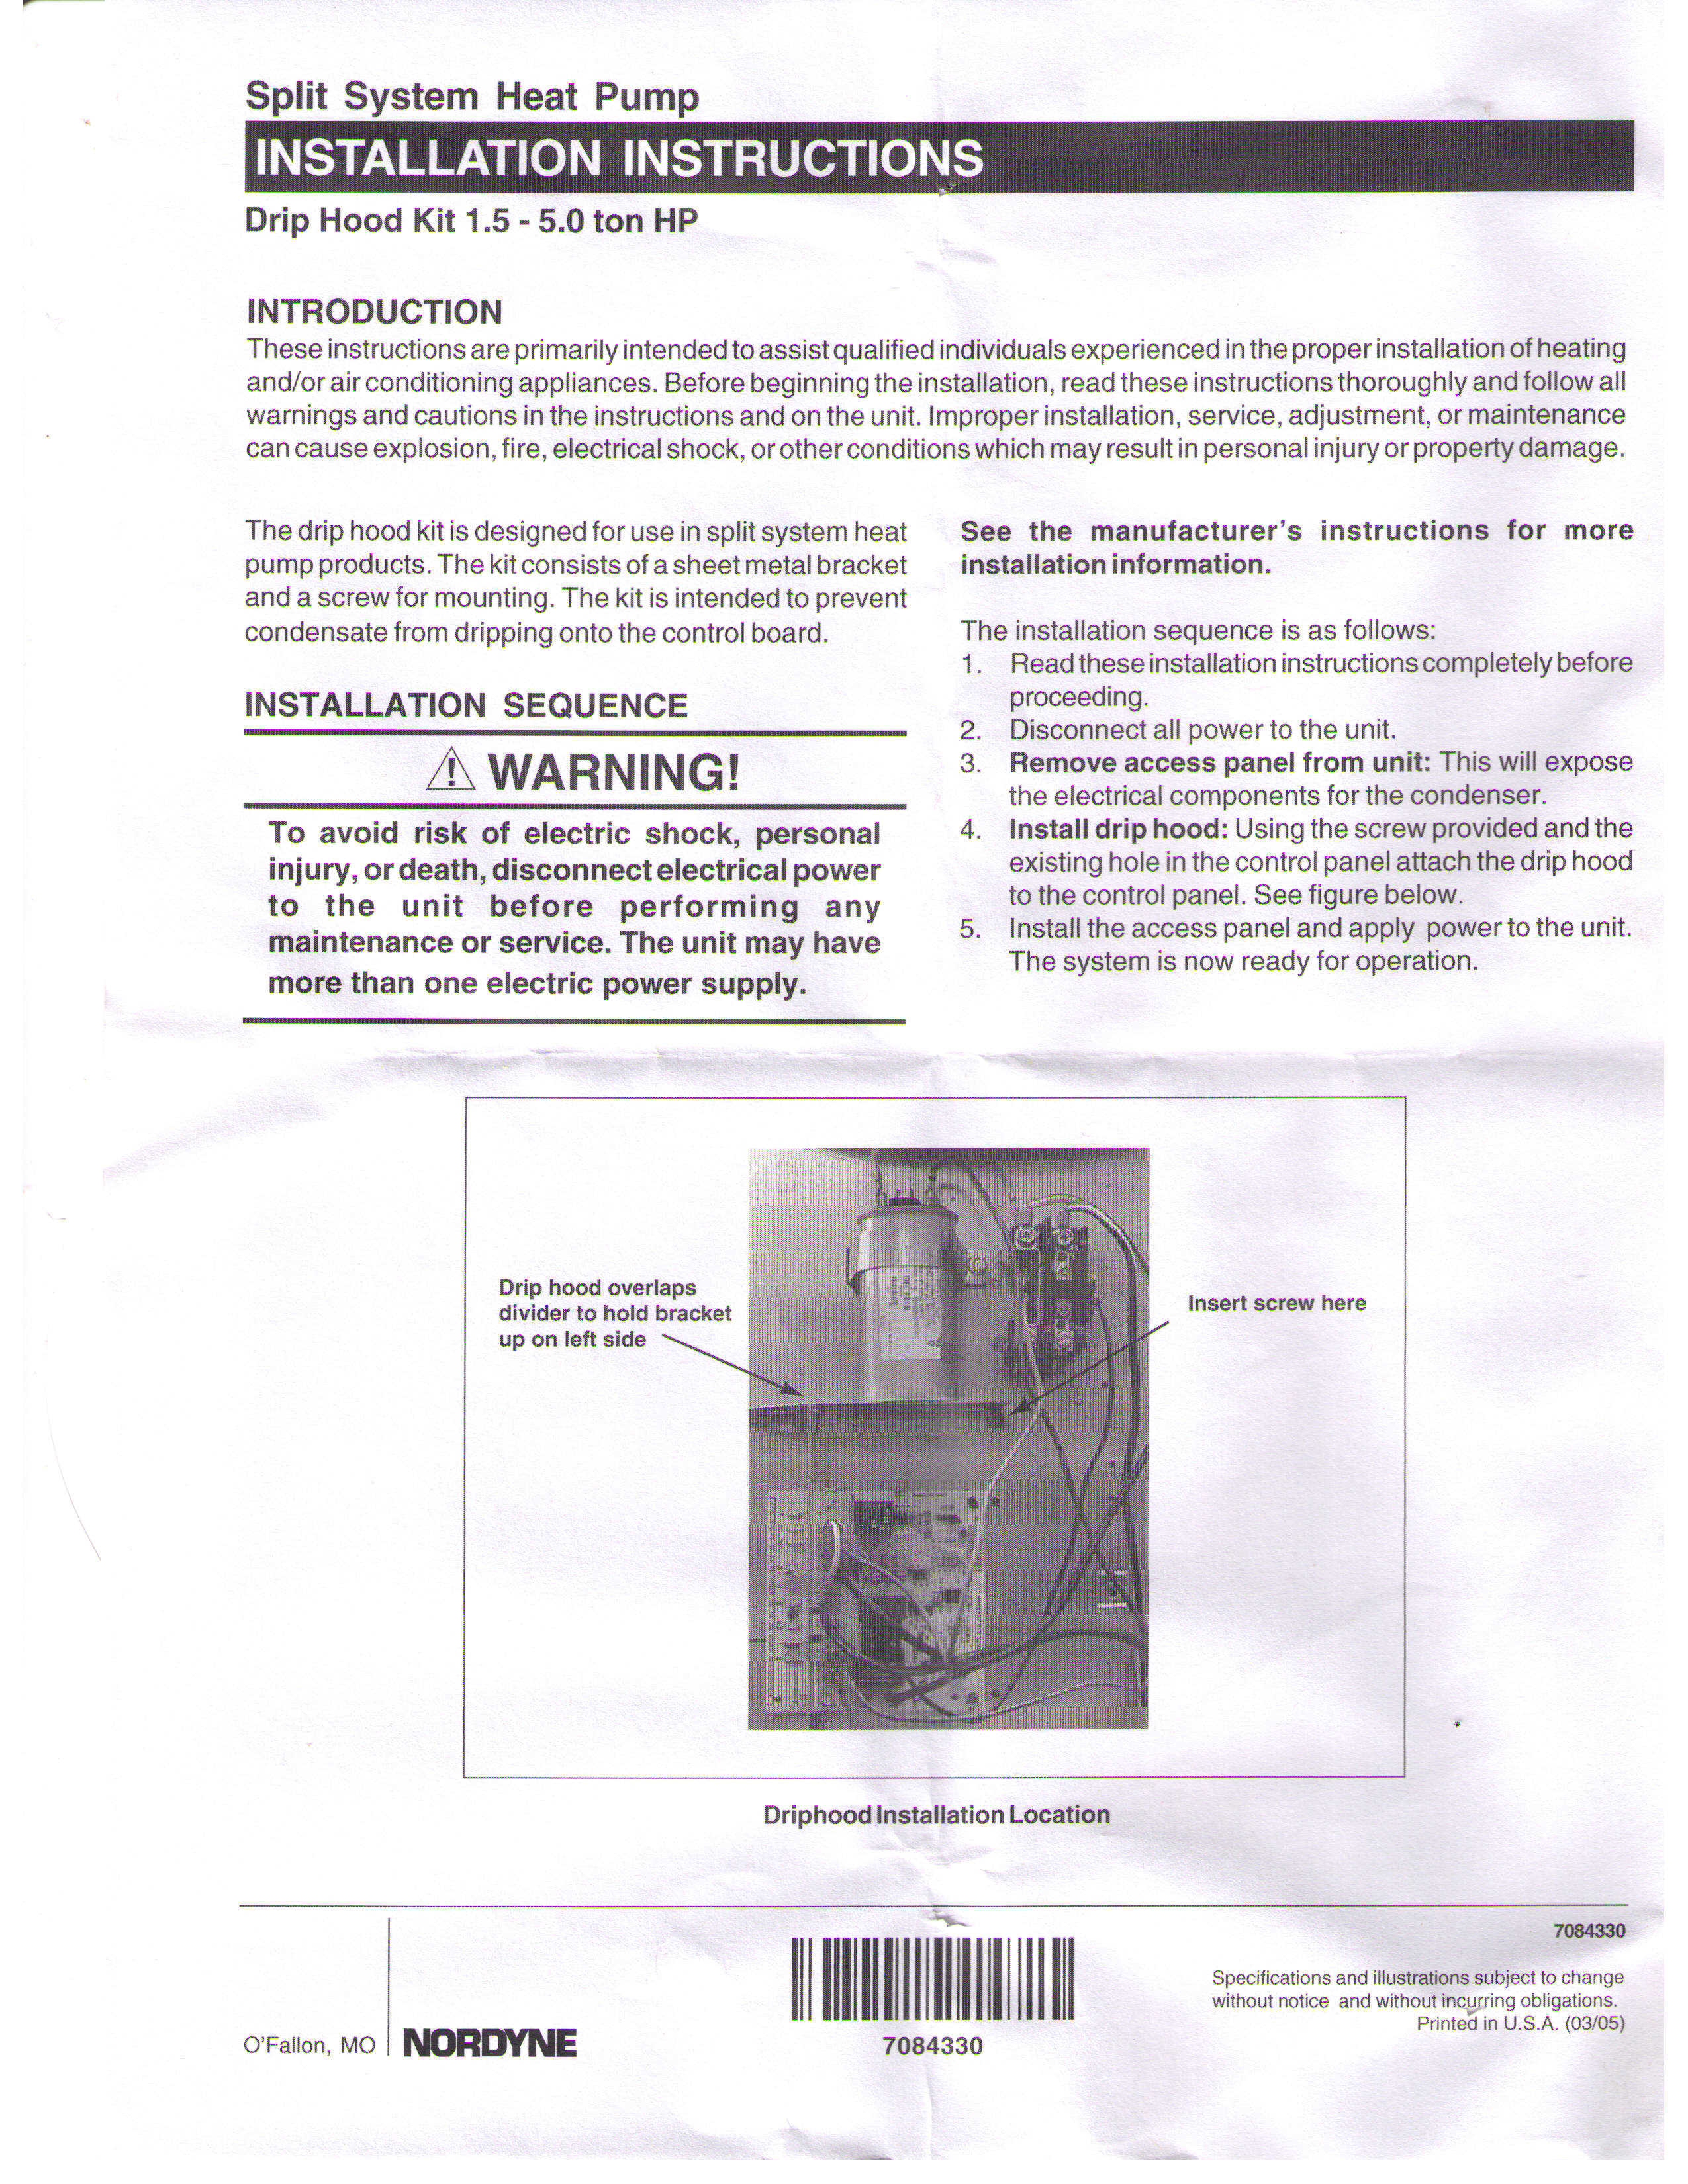 Troubleshooting Guide  Carrier Heat Pump Troubleshooting Guide